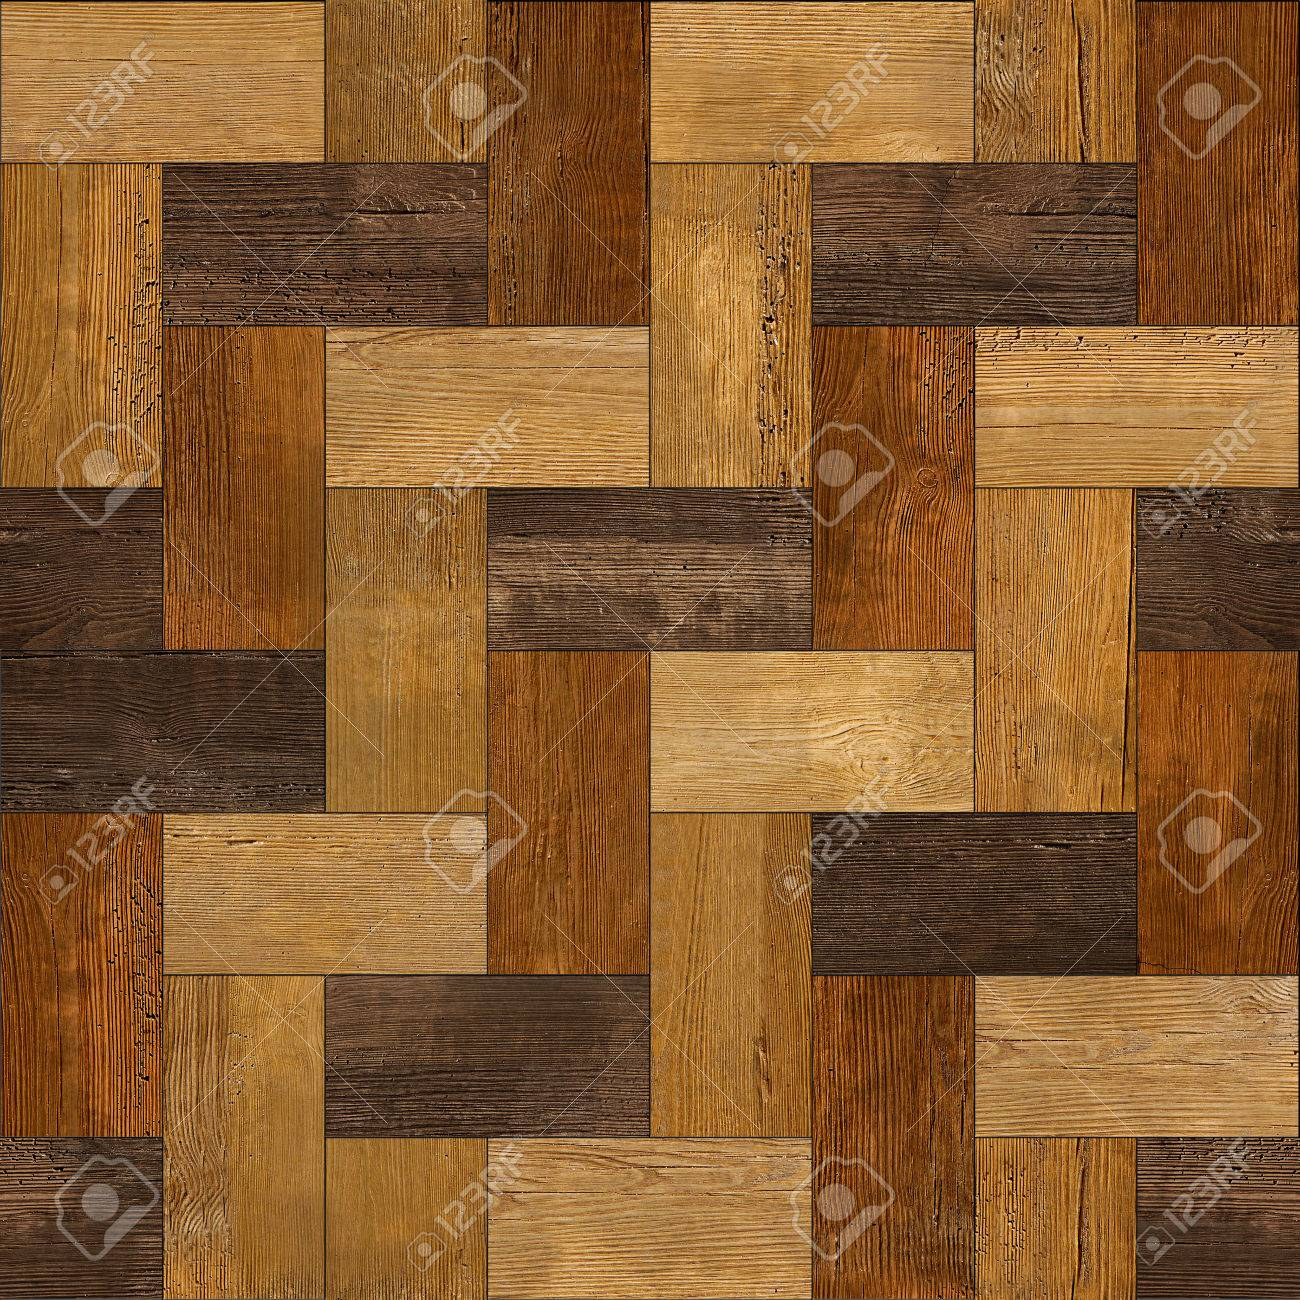 Wooden rectangular parquet stacked for seamless background - 33836945